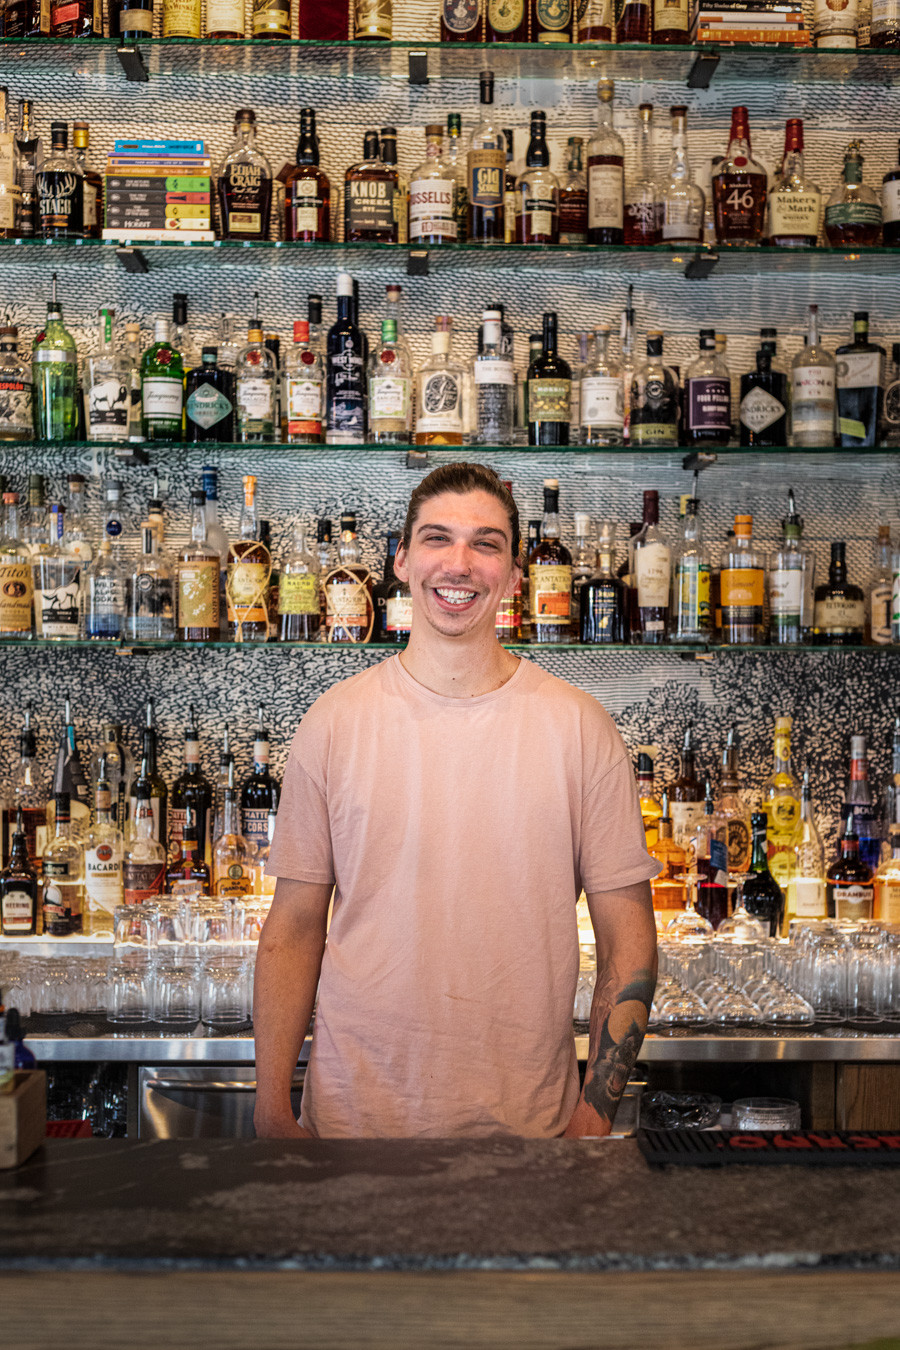 A portrait of Reece Michael Southern, bar manager at Proof, in Calgary (Alberta)